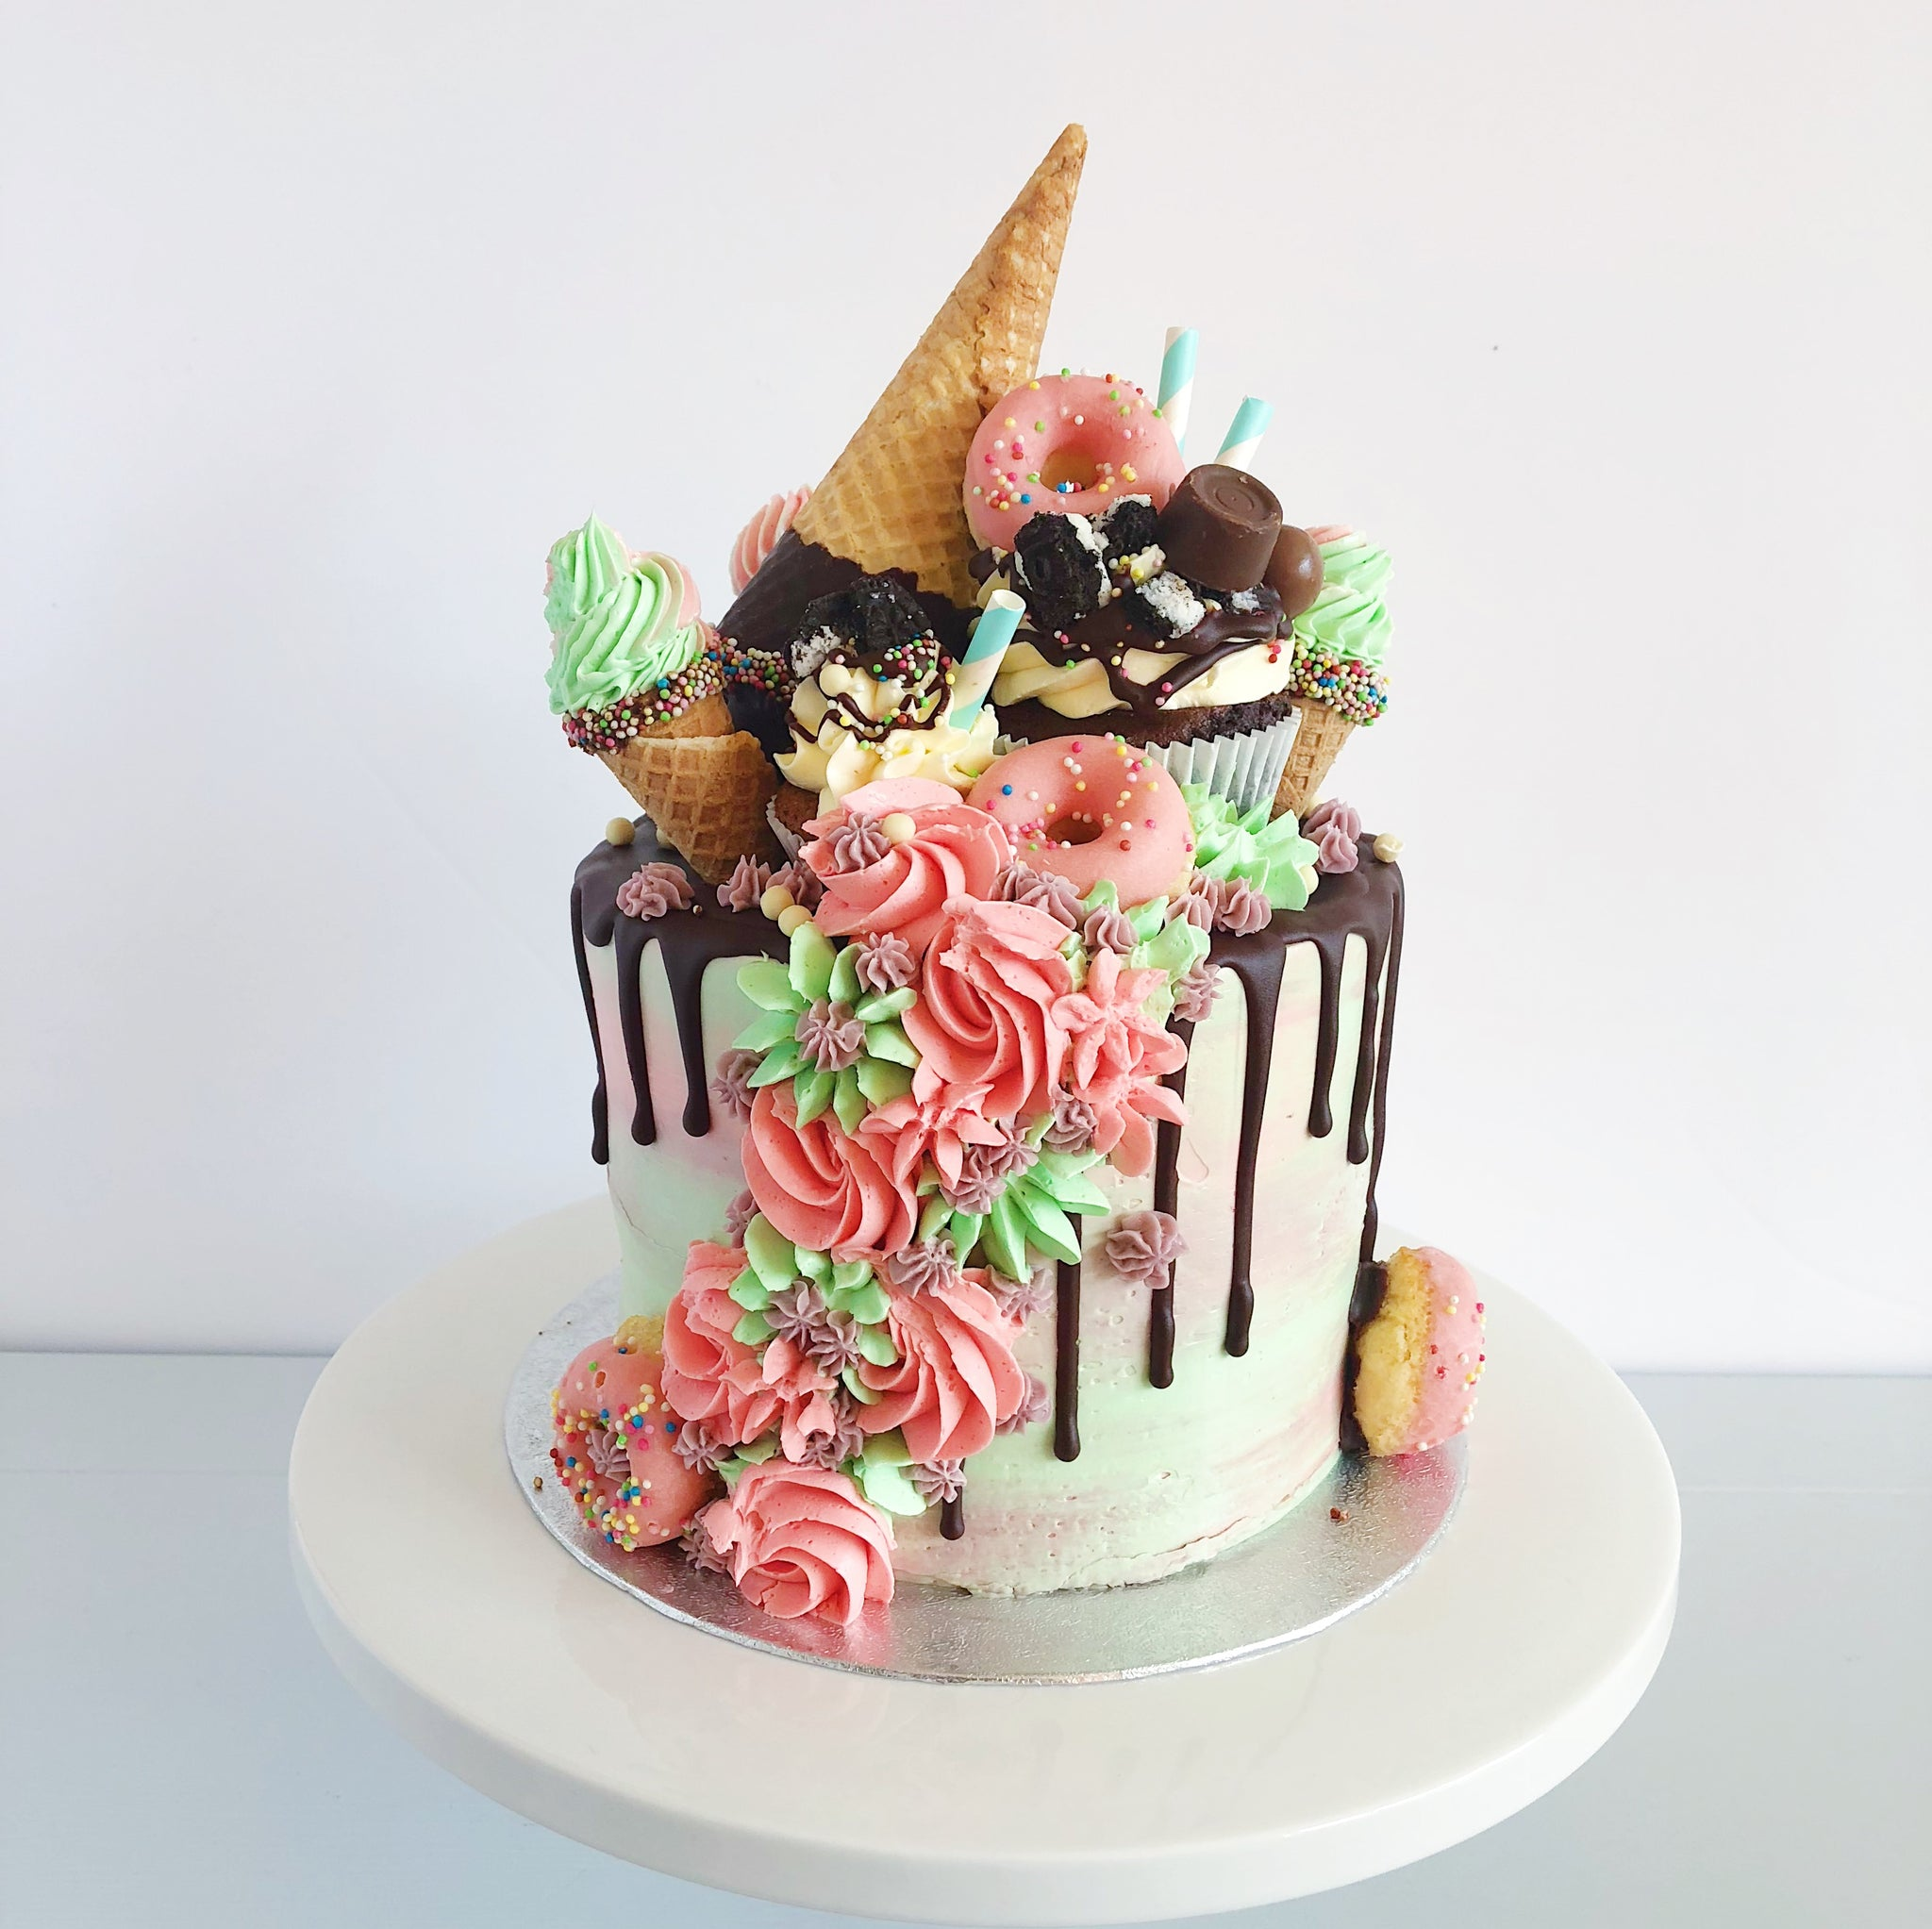 Dropped Ice Cream CHocolate Drip Birthday Cake